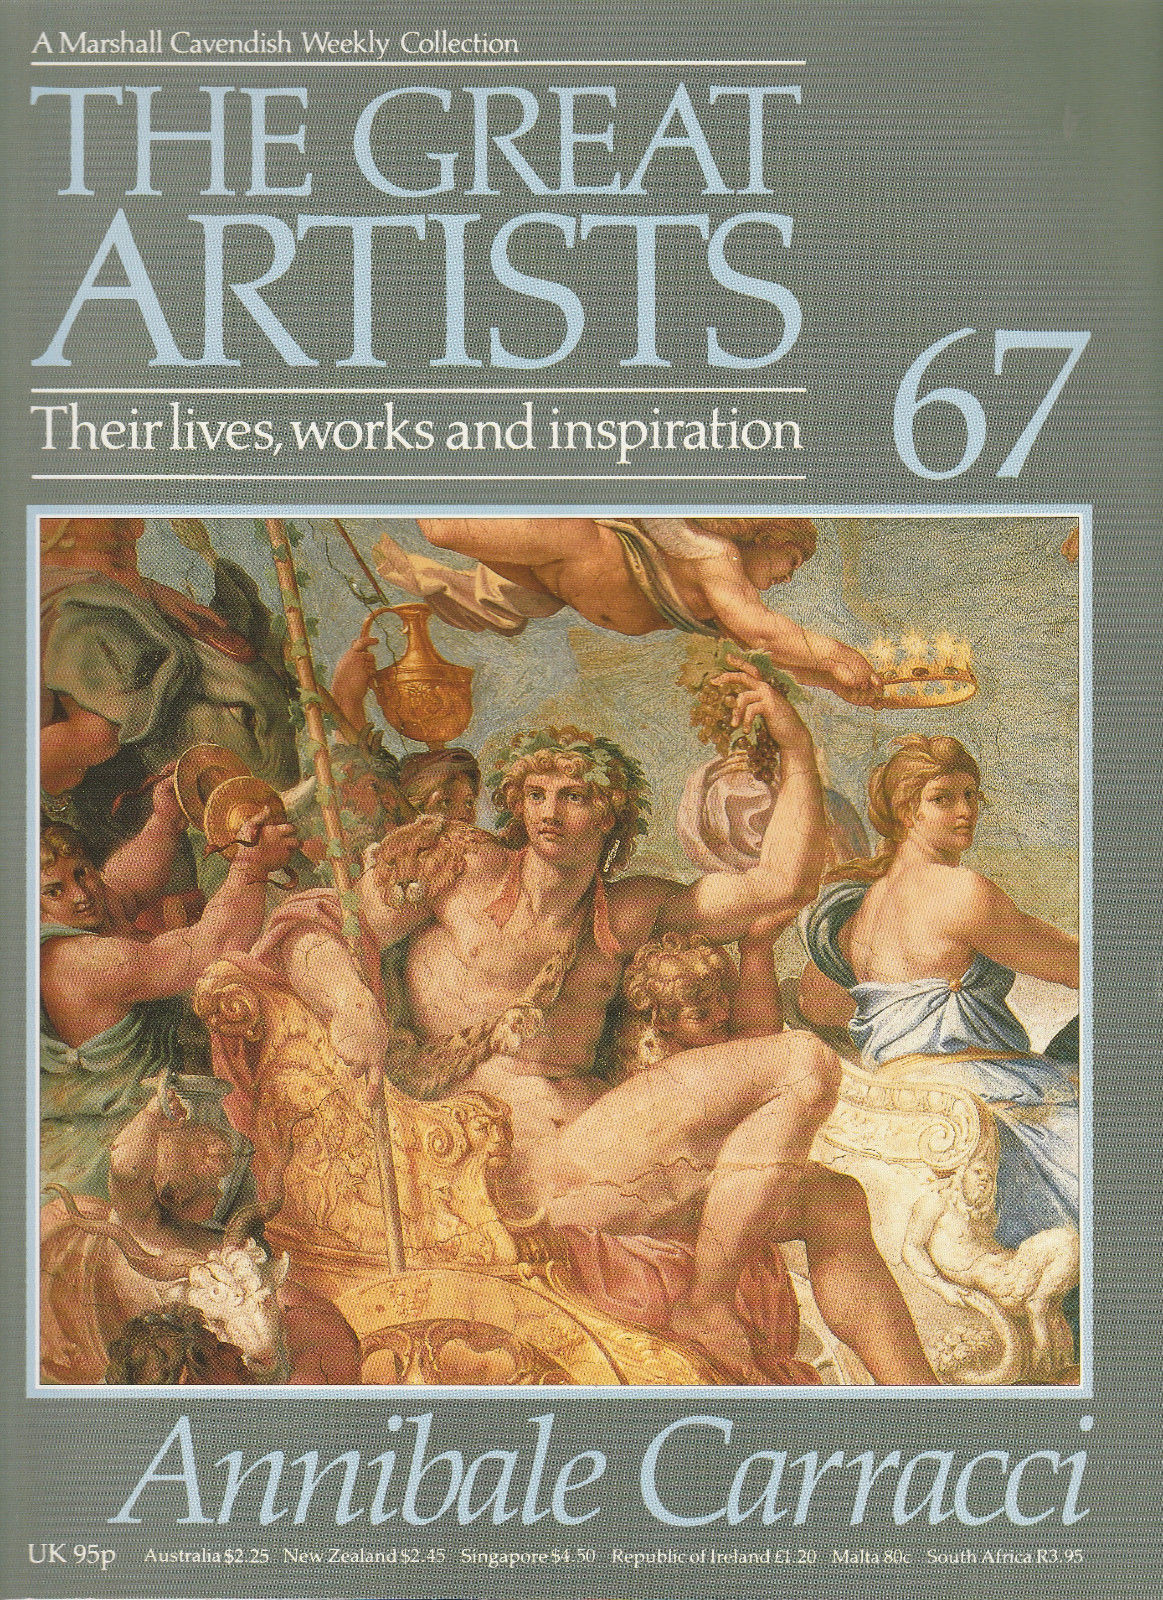 Annibale Carracci (The Great Artists. Their Lives, Works and Inspiration #67)